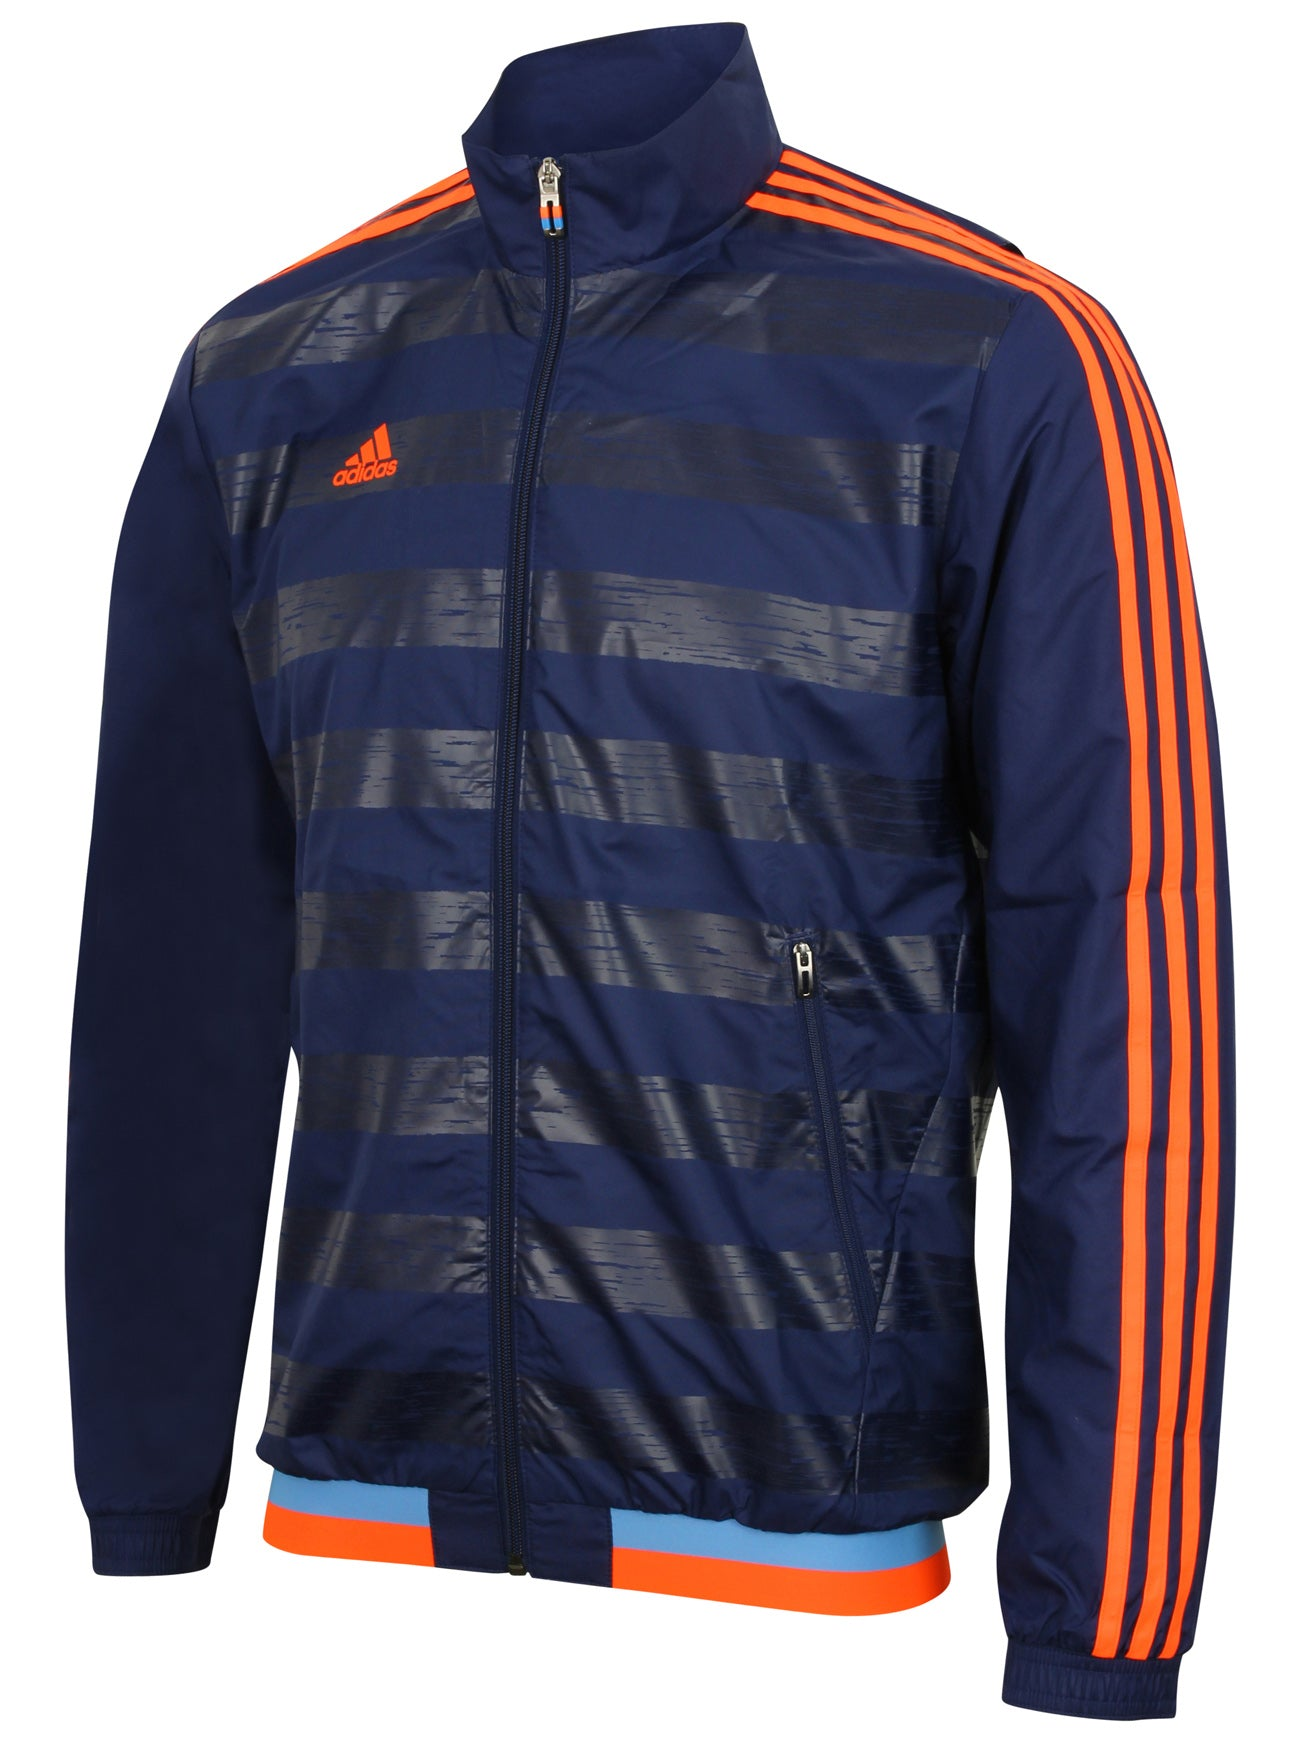 new arrival c6bf7 85074 adidas Men's XSE climacool Woven Full Zip Training Jacket ...